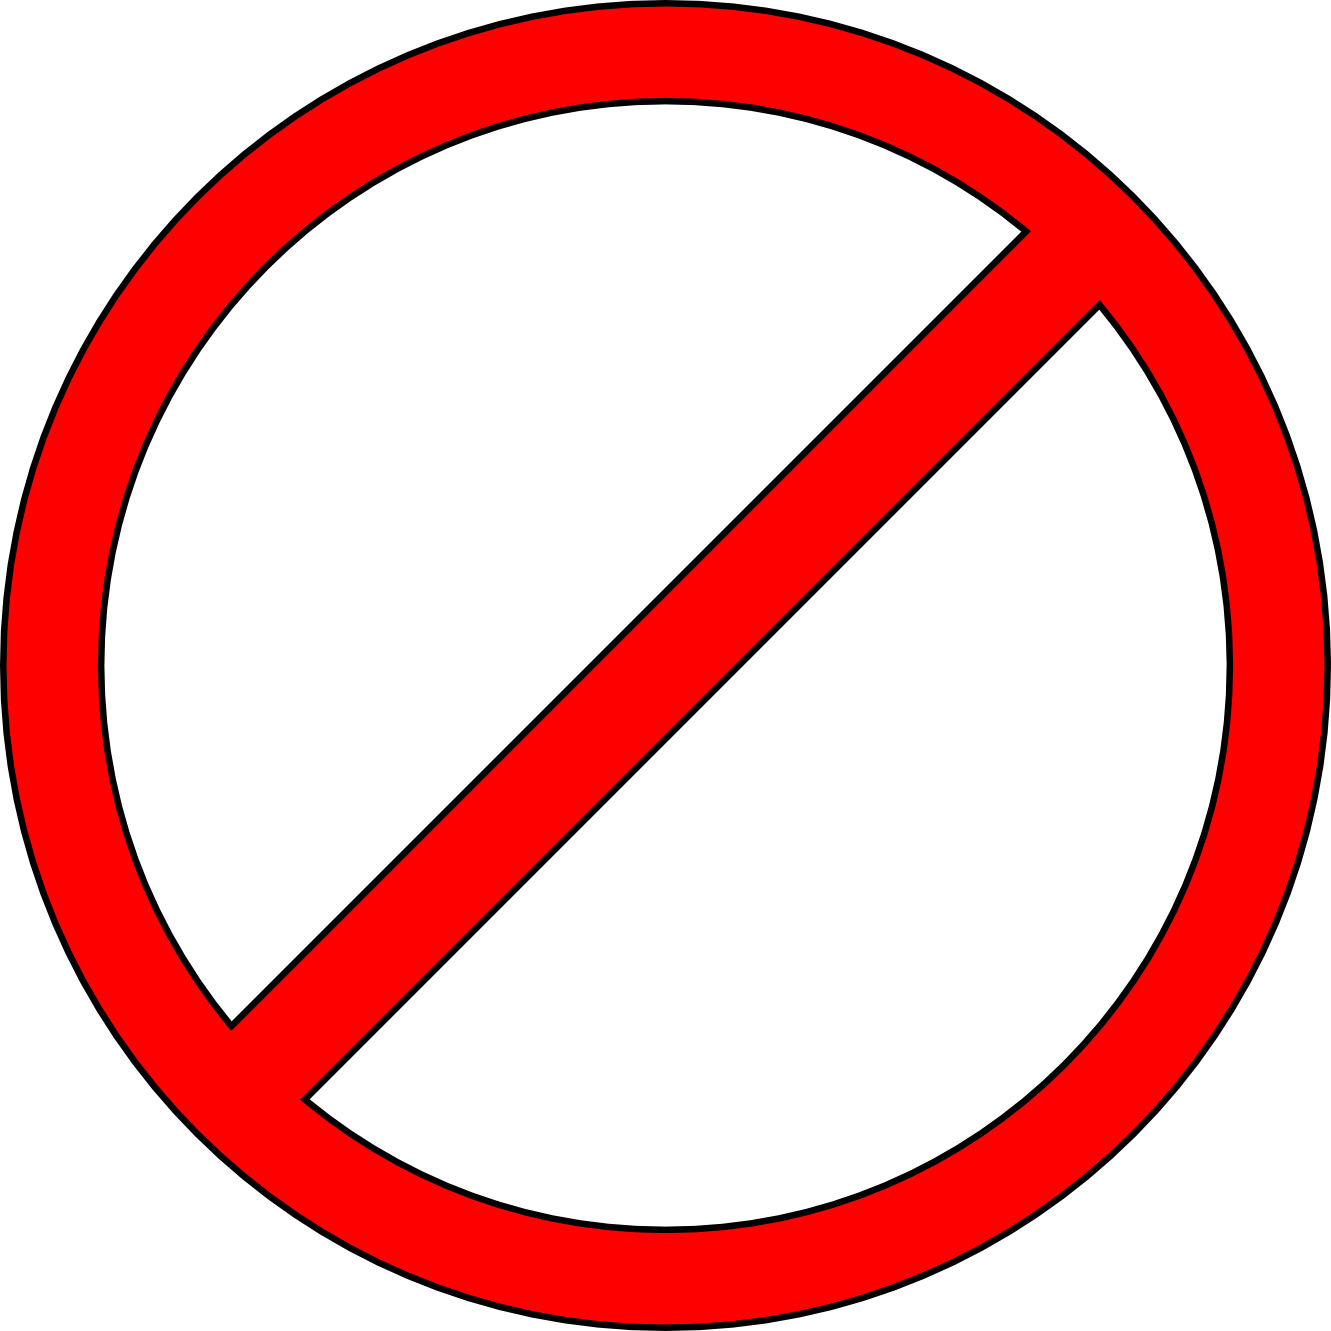 Stop clipart do not Icon Png:Warning #20458 Free Icons